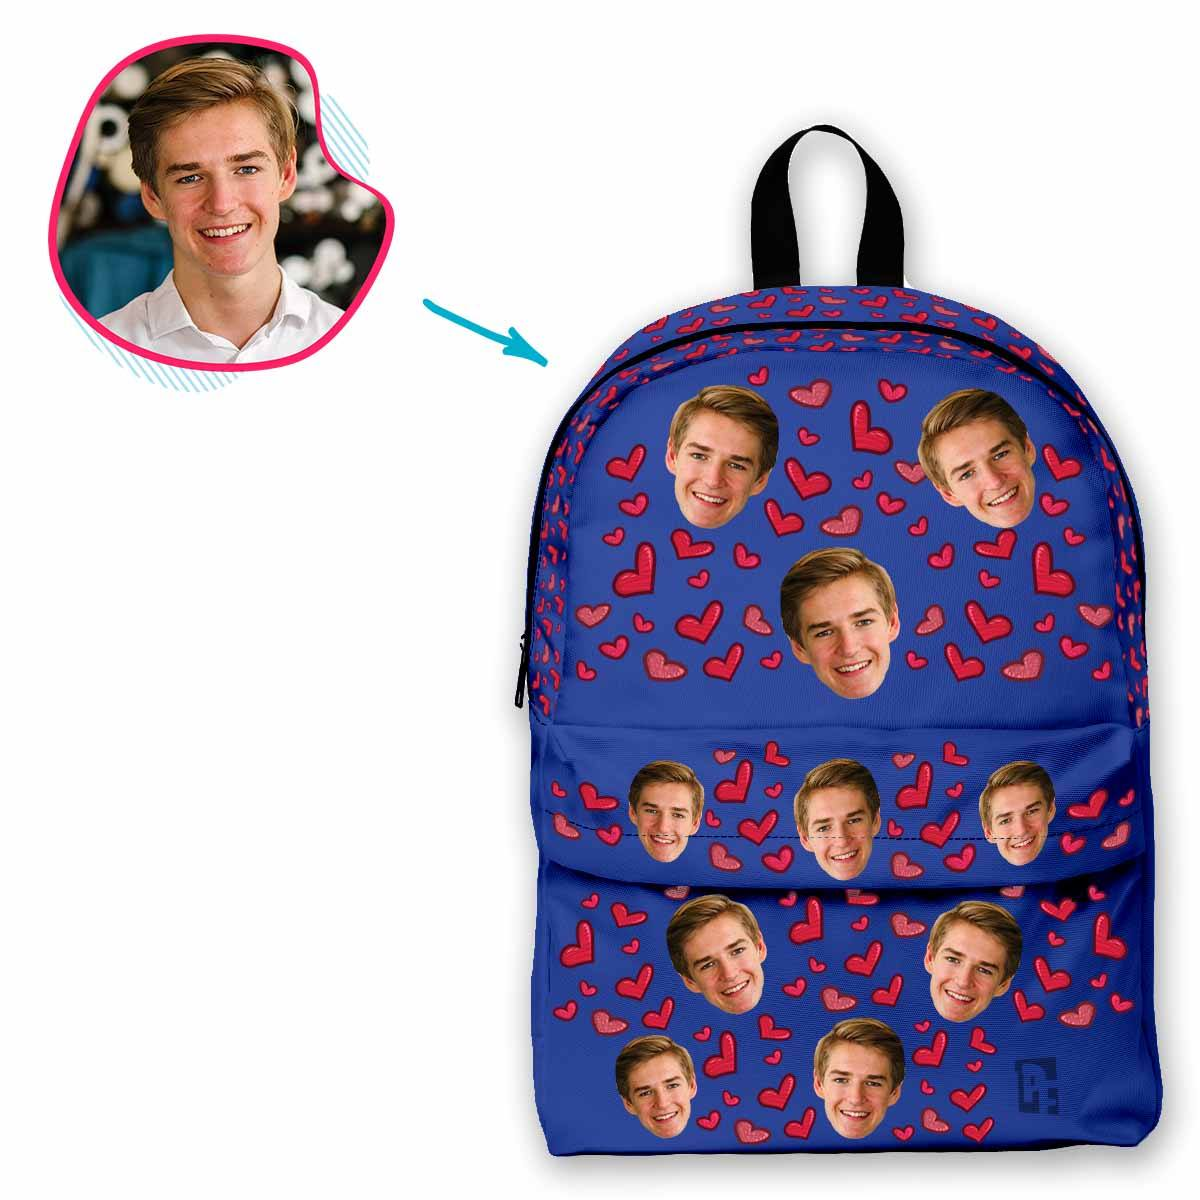 darkblue Heart classic backpack personalized with photo of face printed on it